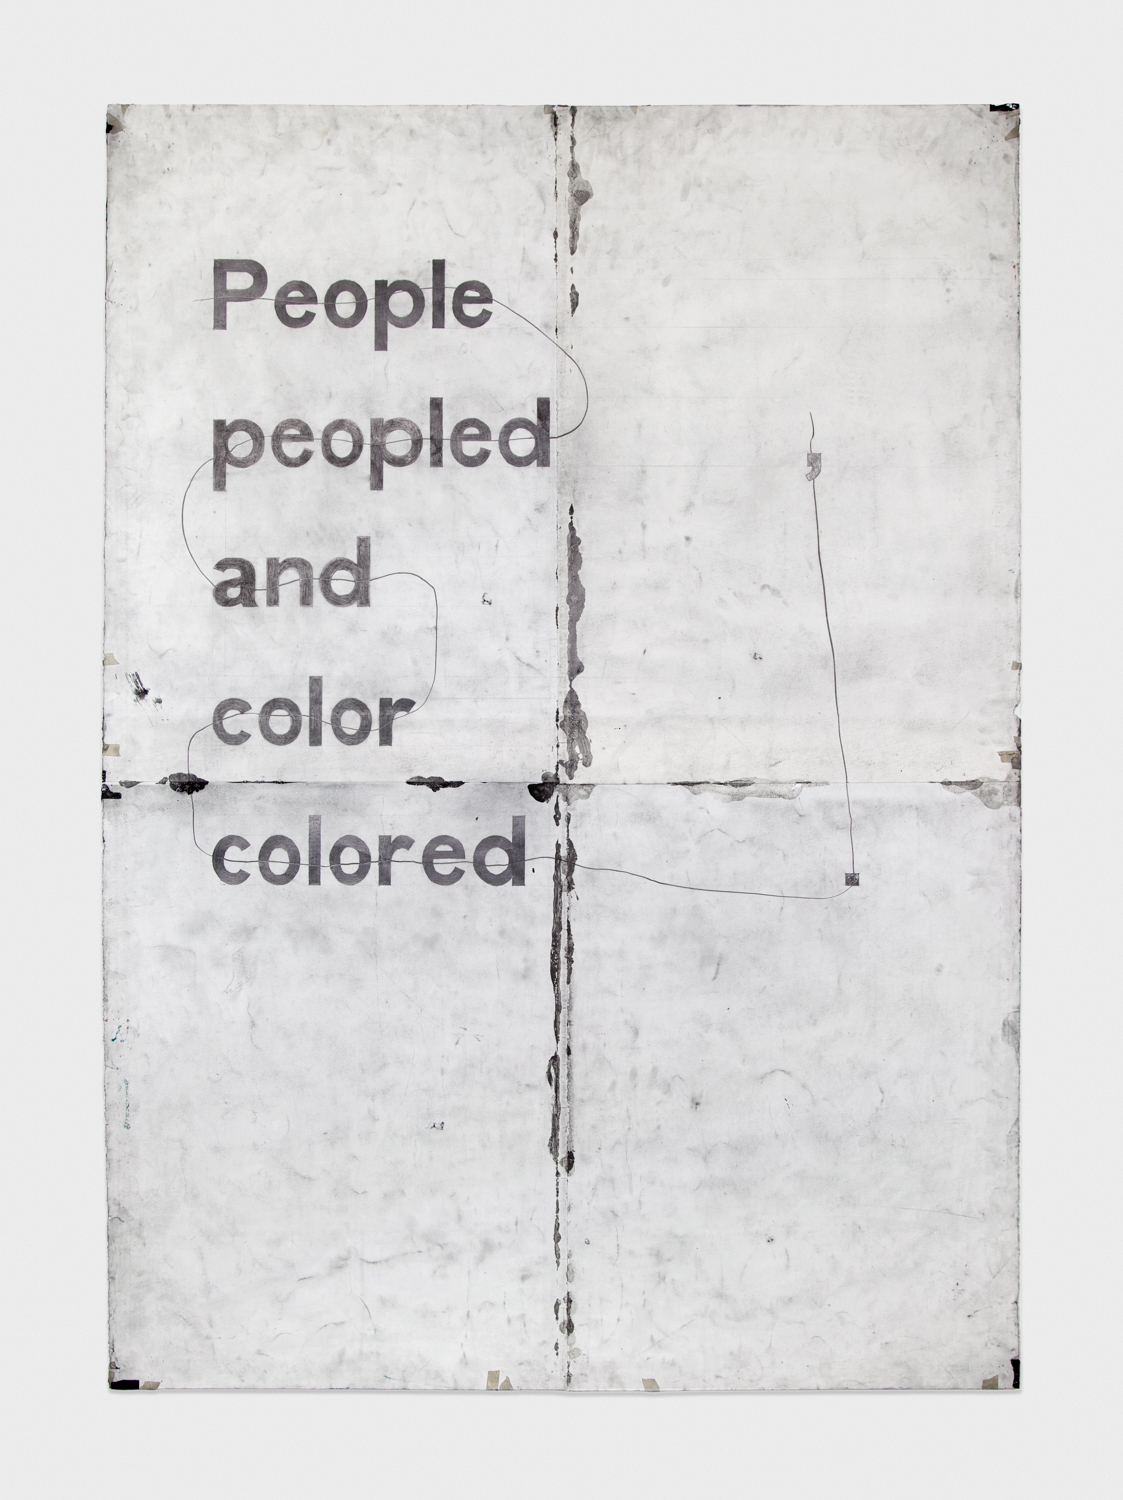 Tony Lewis  ,.deroloc color dna peopled elpoeP  2011 Pencil and graphite powder on paper 84h x 60w in TL011